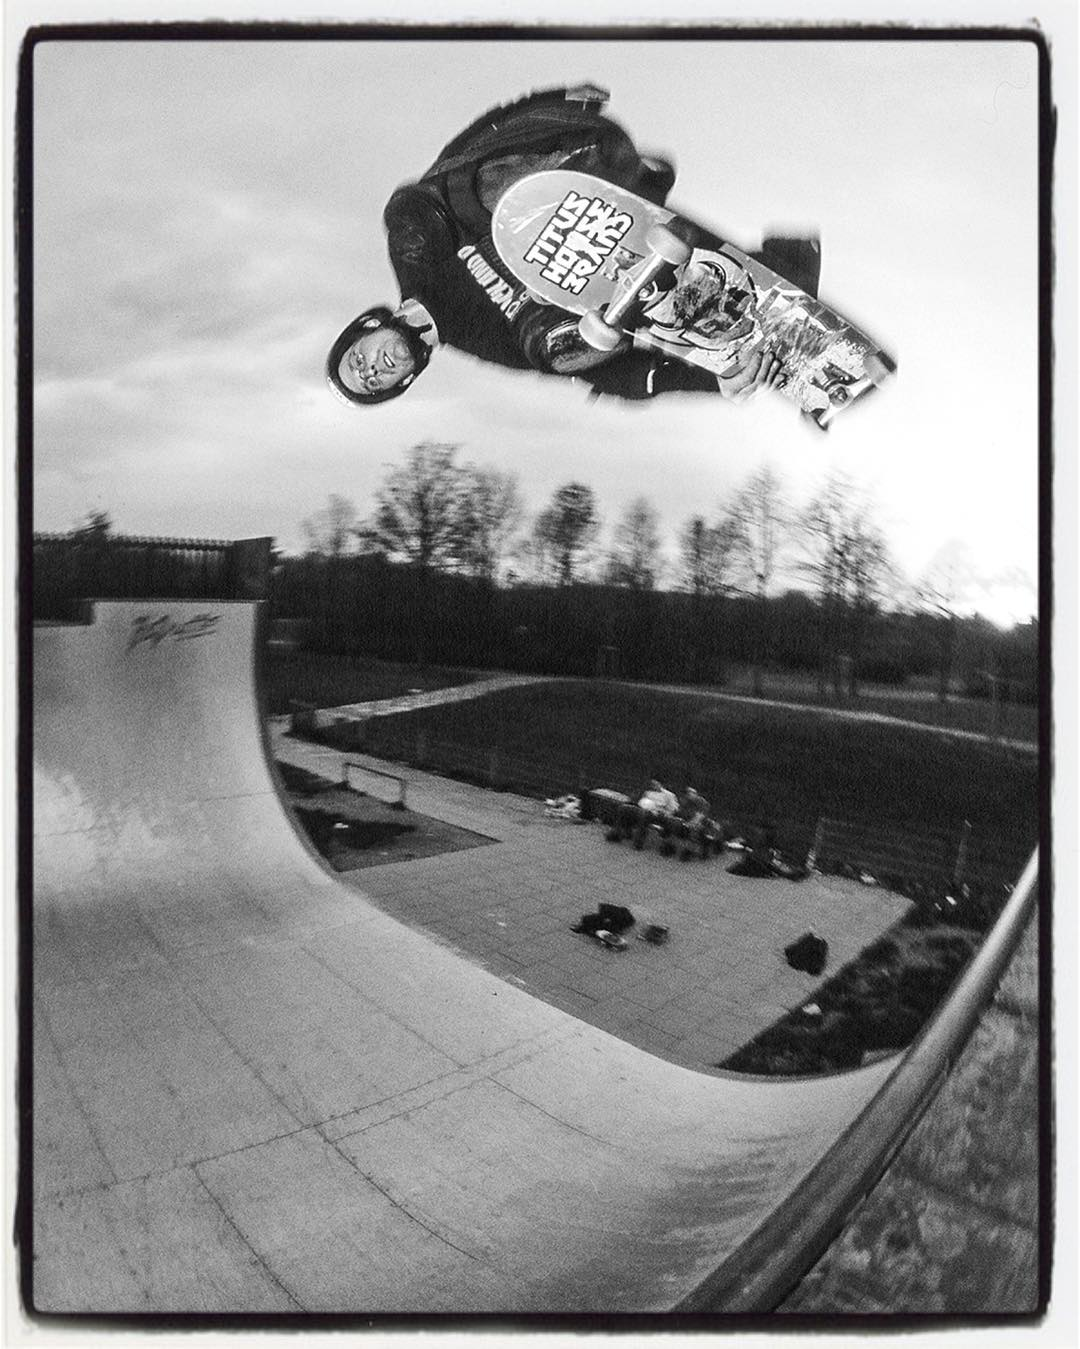 #flashbackfriday another one of Beule. Indy air above the old metal vert ramp at the Rheinaue in Bonn. Check out www.freebeule.de for Info about hin and how to help. #skateboarding #vert #halfpipe #indyair #gunnair #bonn #rheinaue #freebeule #bailgun #gerdriegerphotography